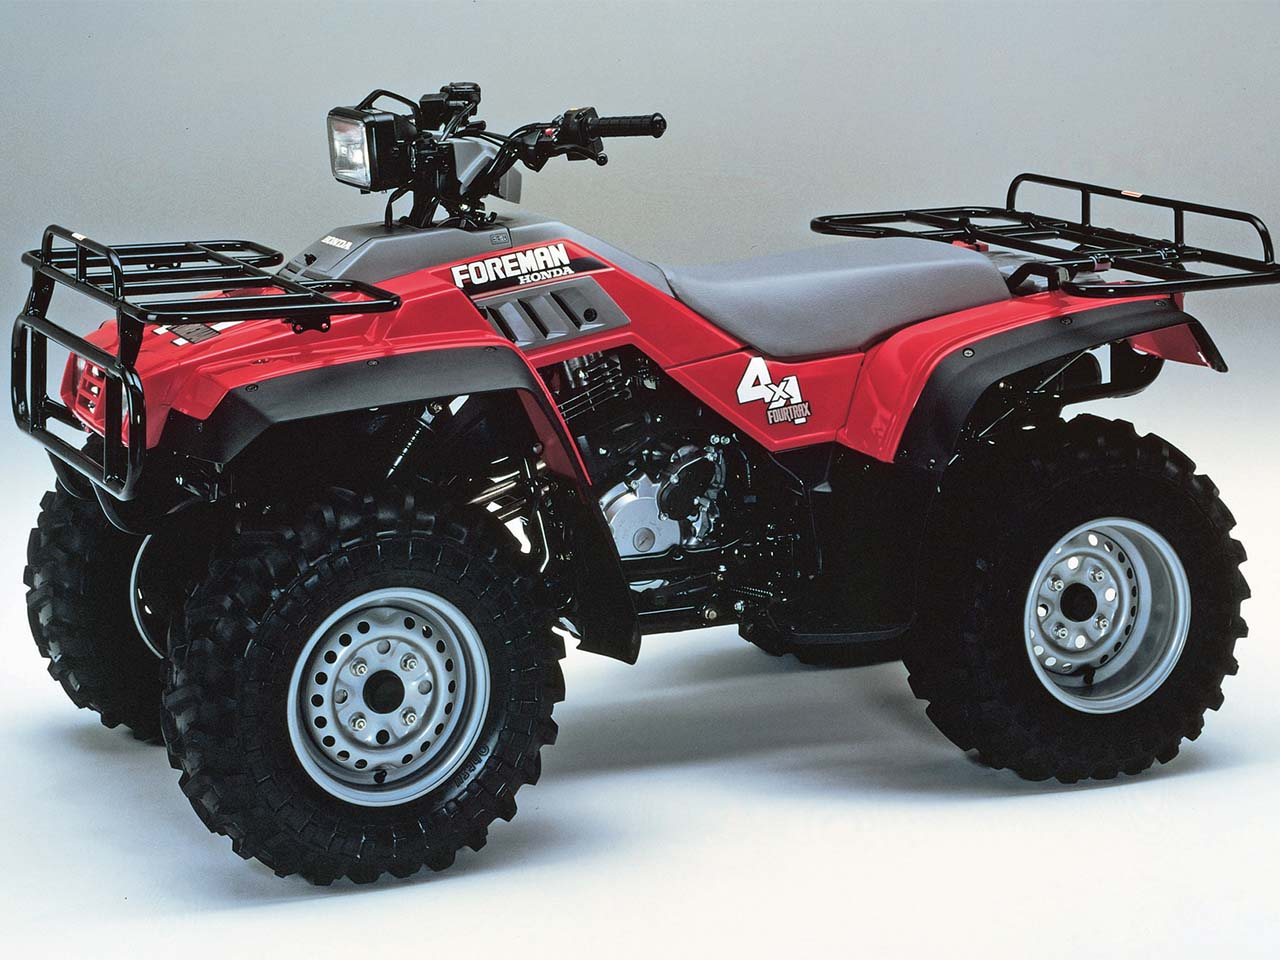 hight resolution of honda 1987 fourtrax foreman4x4 right red studio